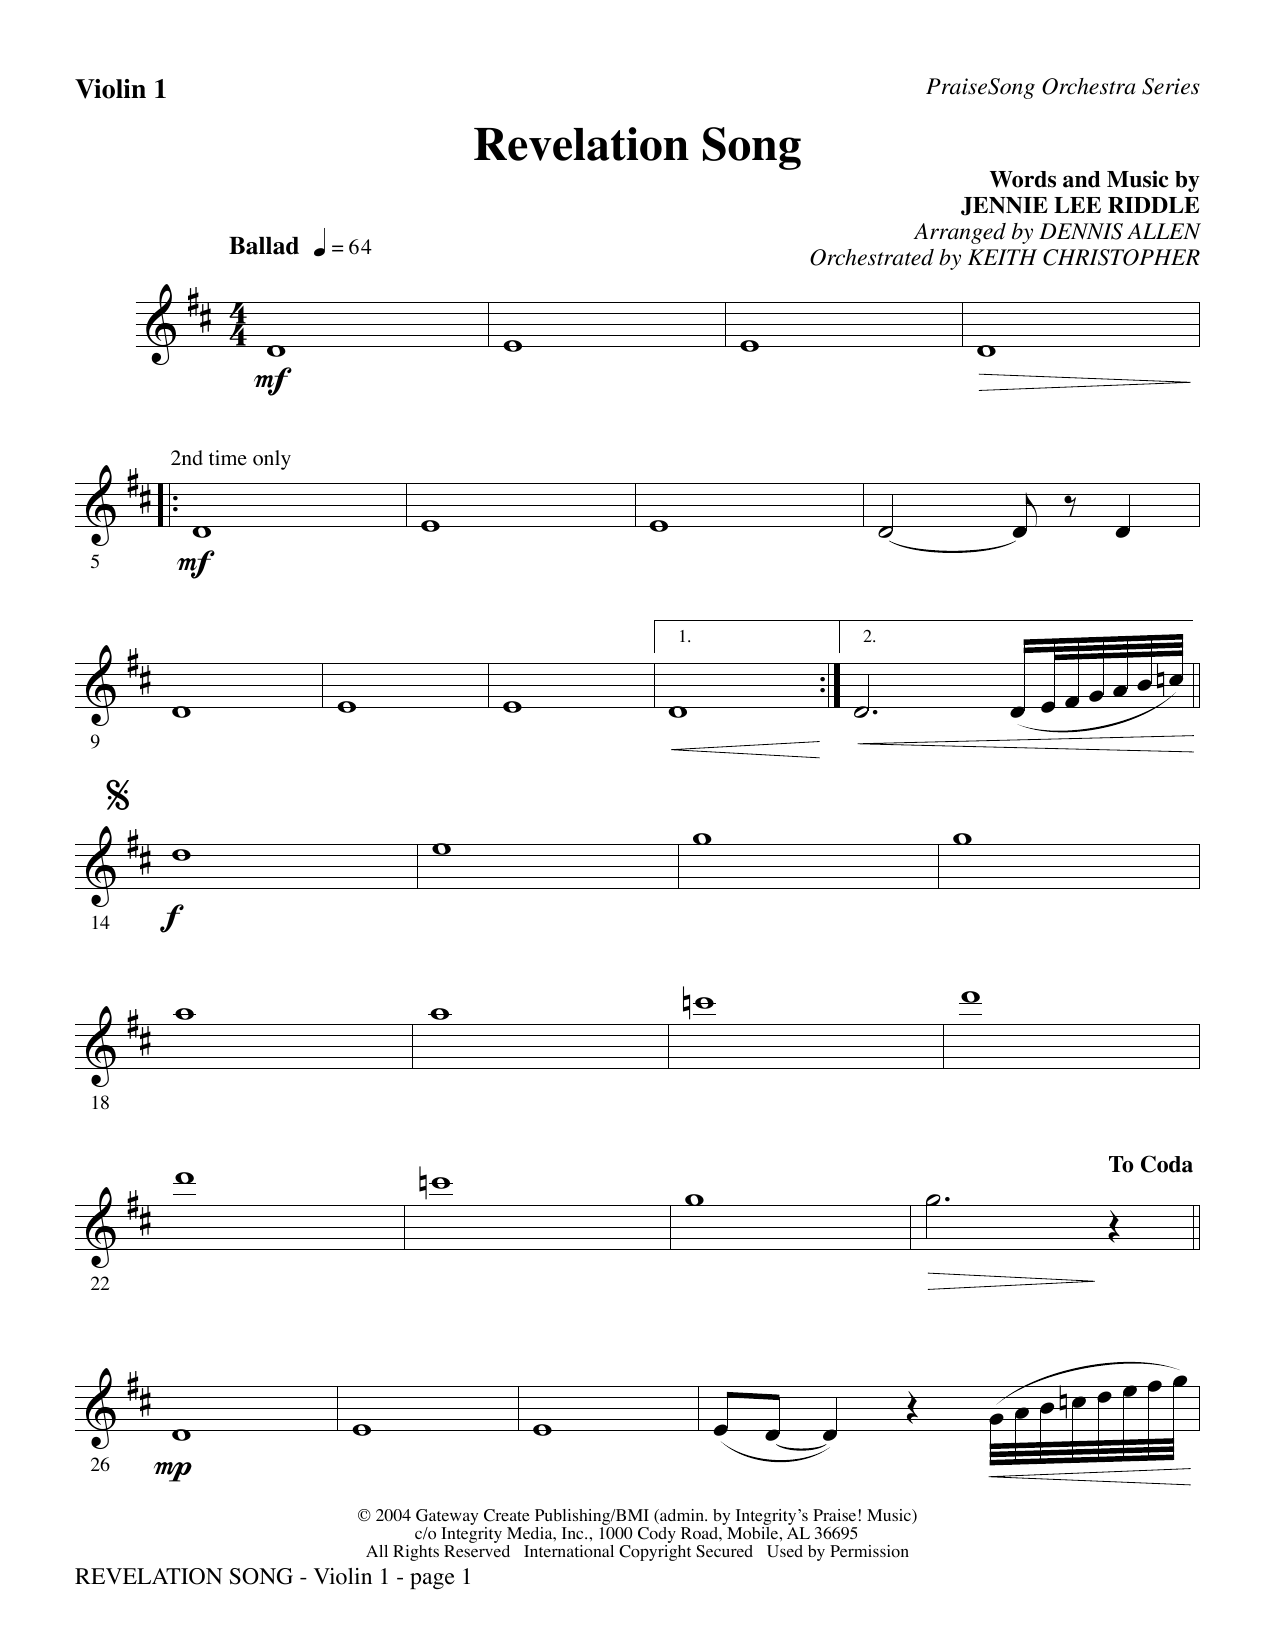 Revelation Song - Violin 1 Sheet Music